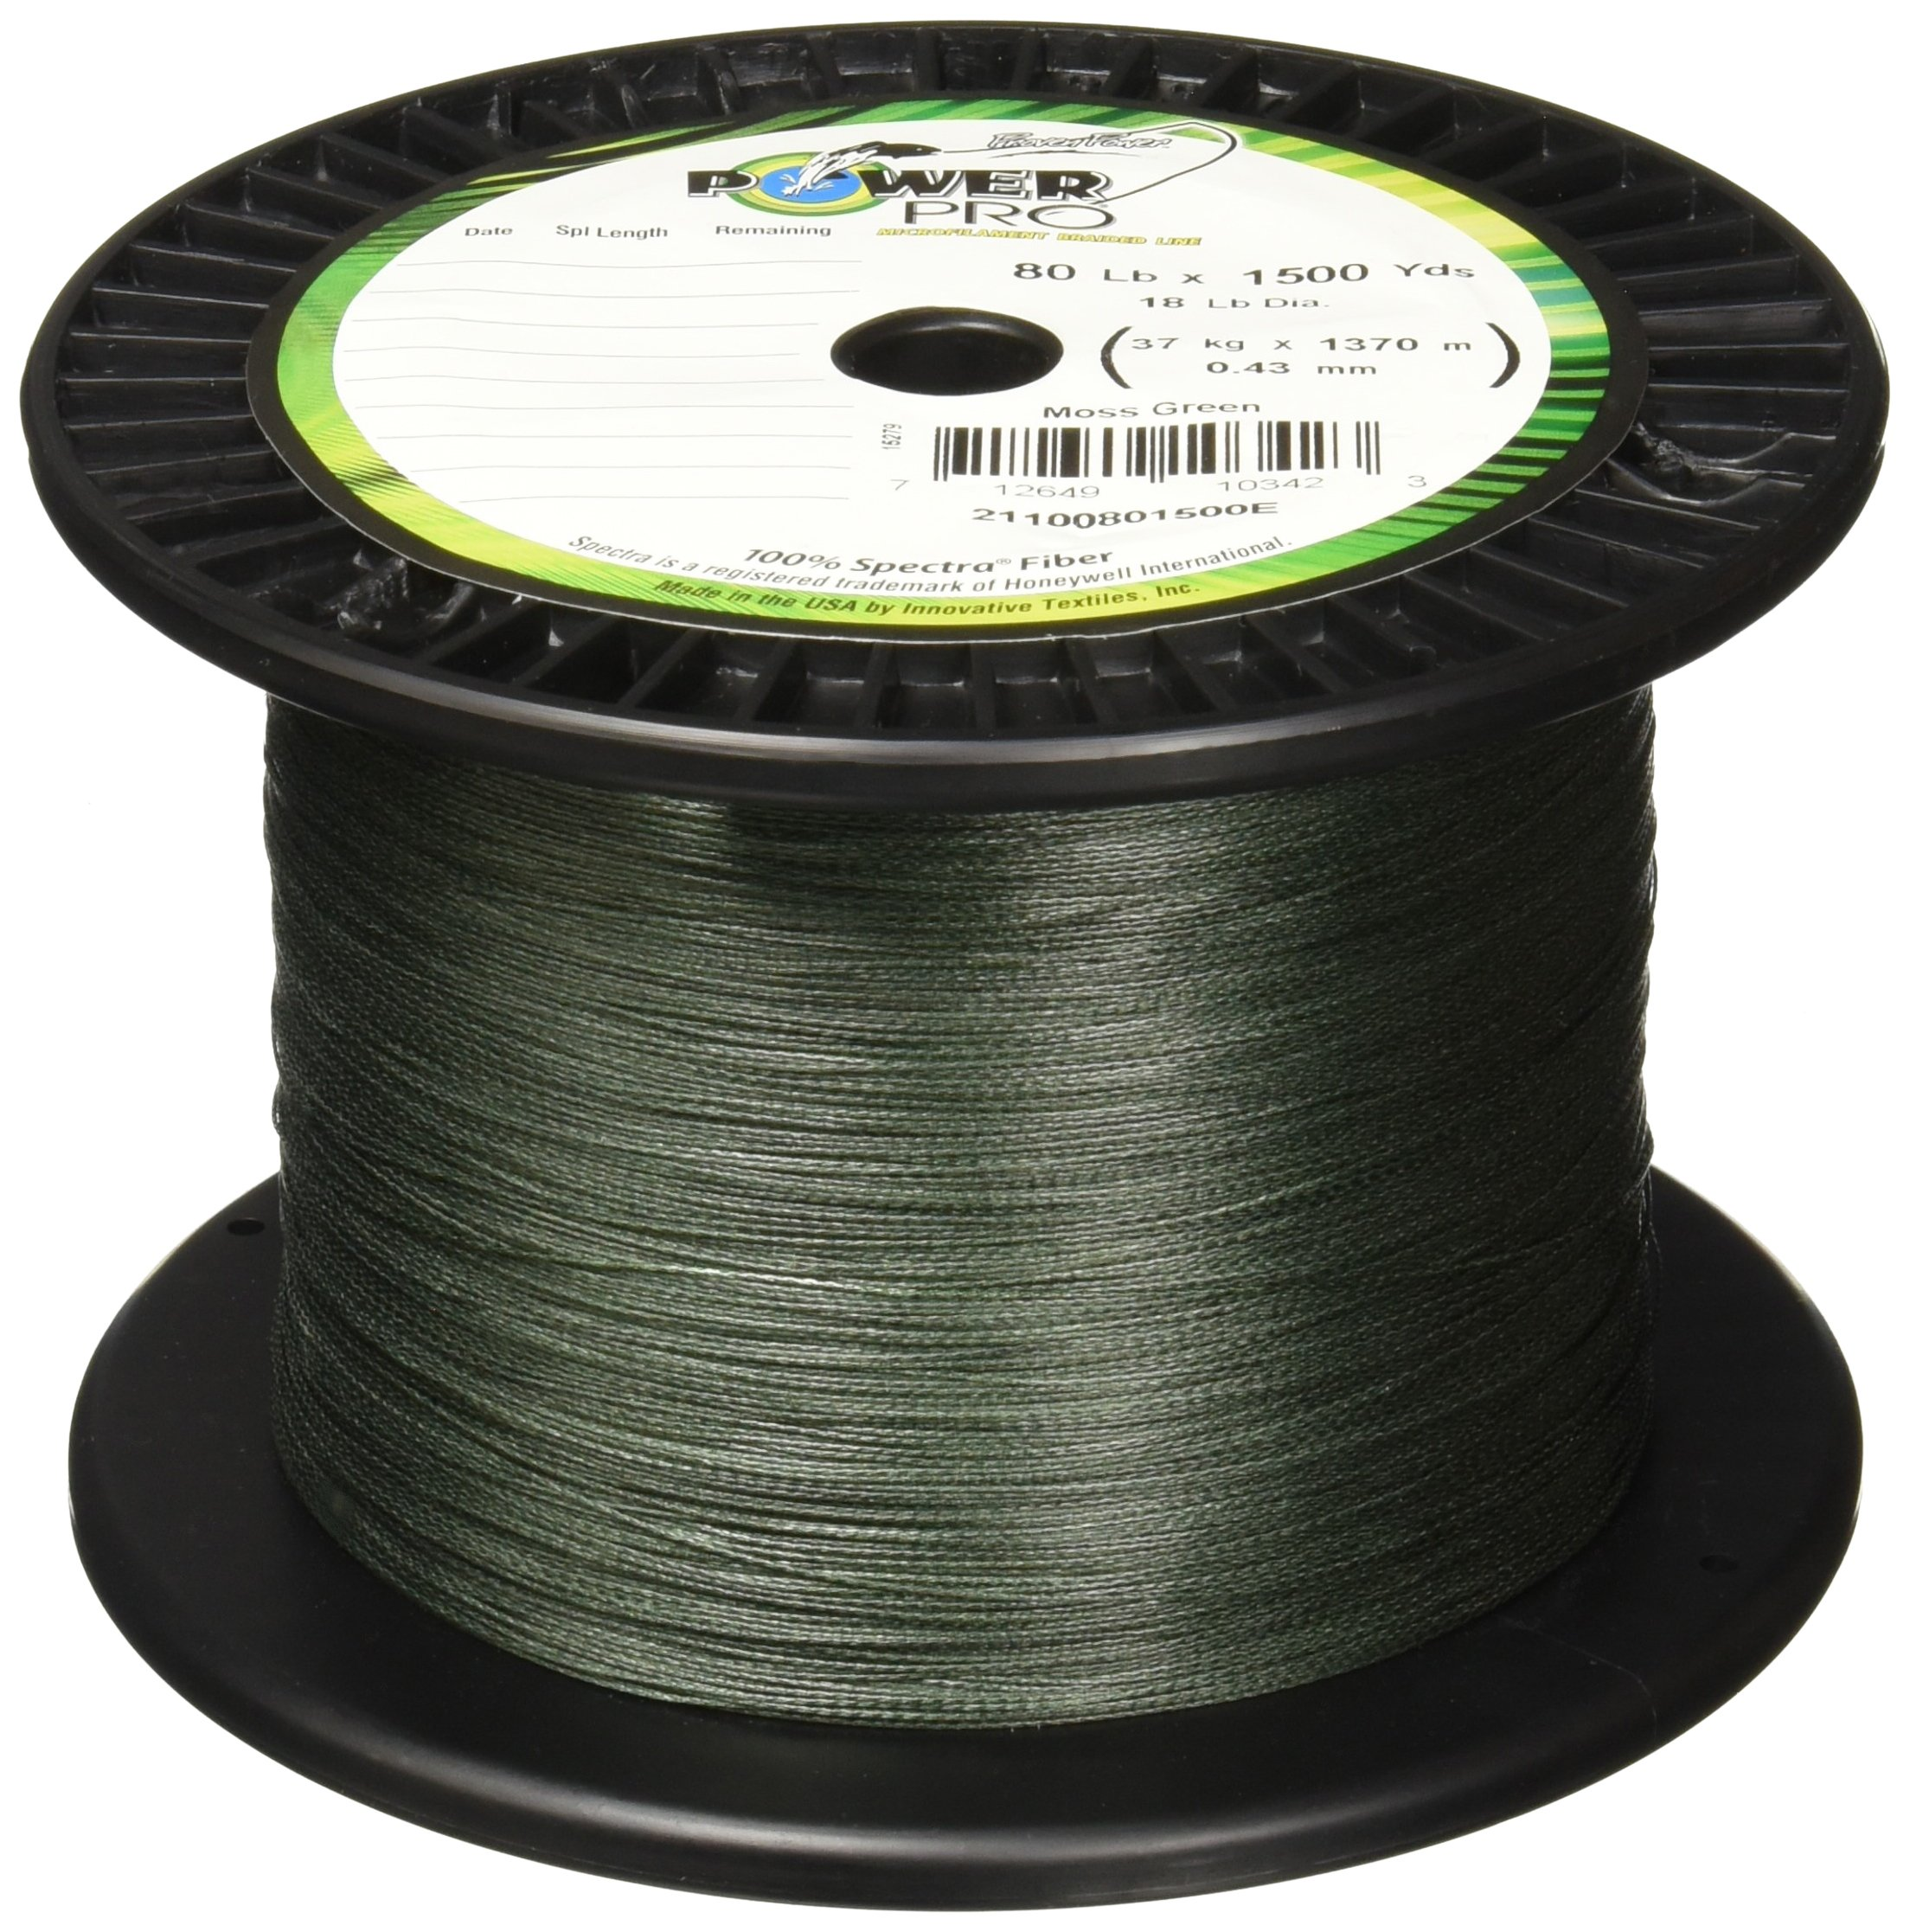 Best Rated In Fishing Line Helpful Customer Reviews Thread South Bend Wiring Power Pro Spectra Fiber Braided Product Image